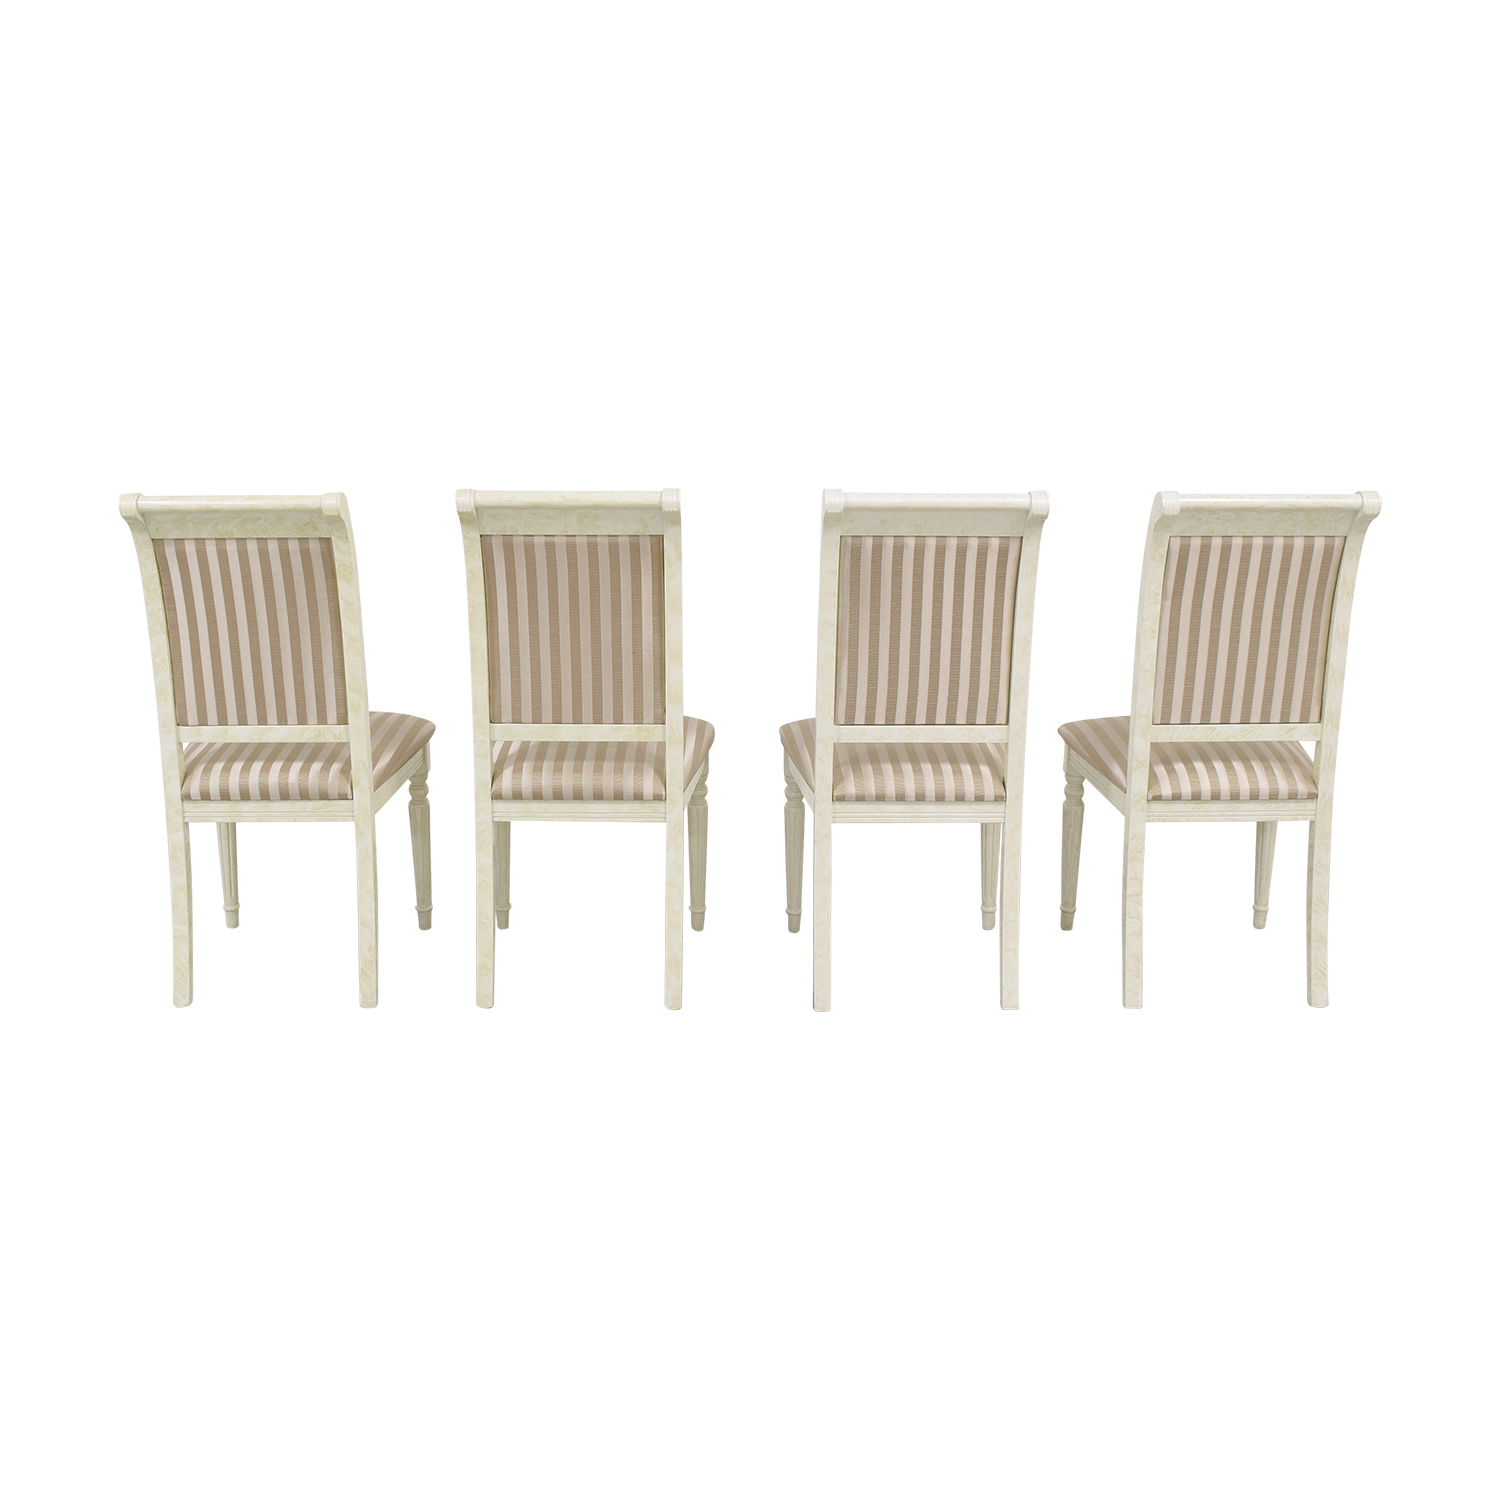 Arredoclassic Liberty Dining Chairs sale